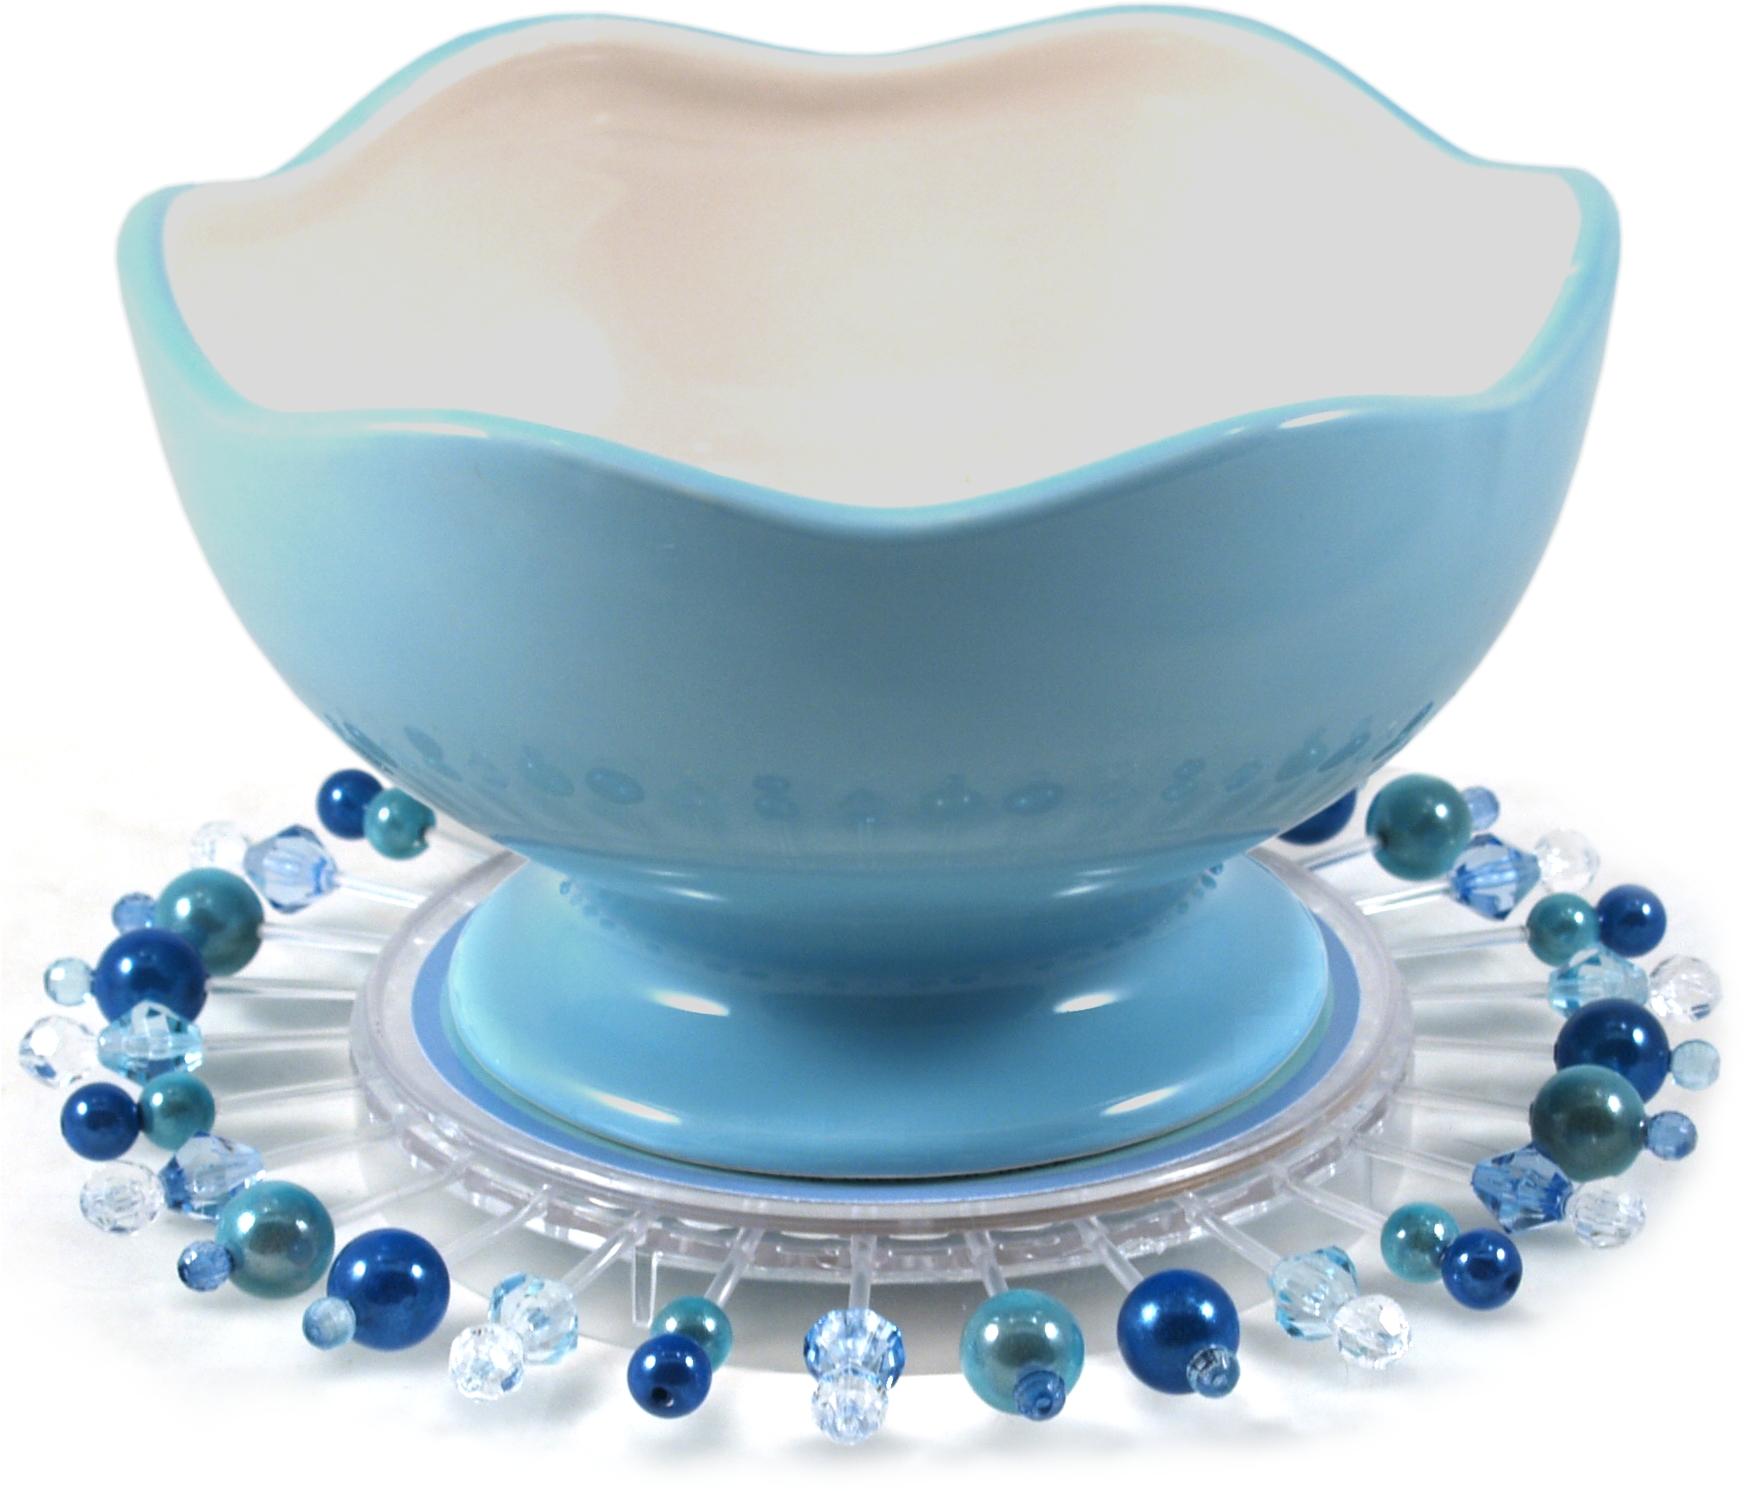 Talisman Art Deco Blue Entertaining Kit with Ceramic Bowl